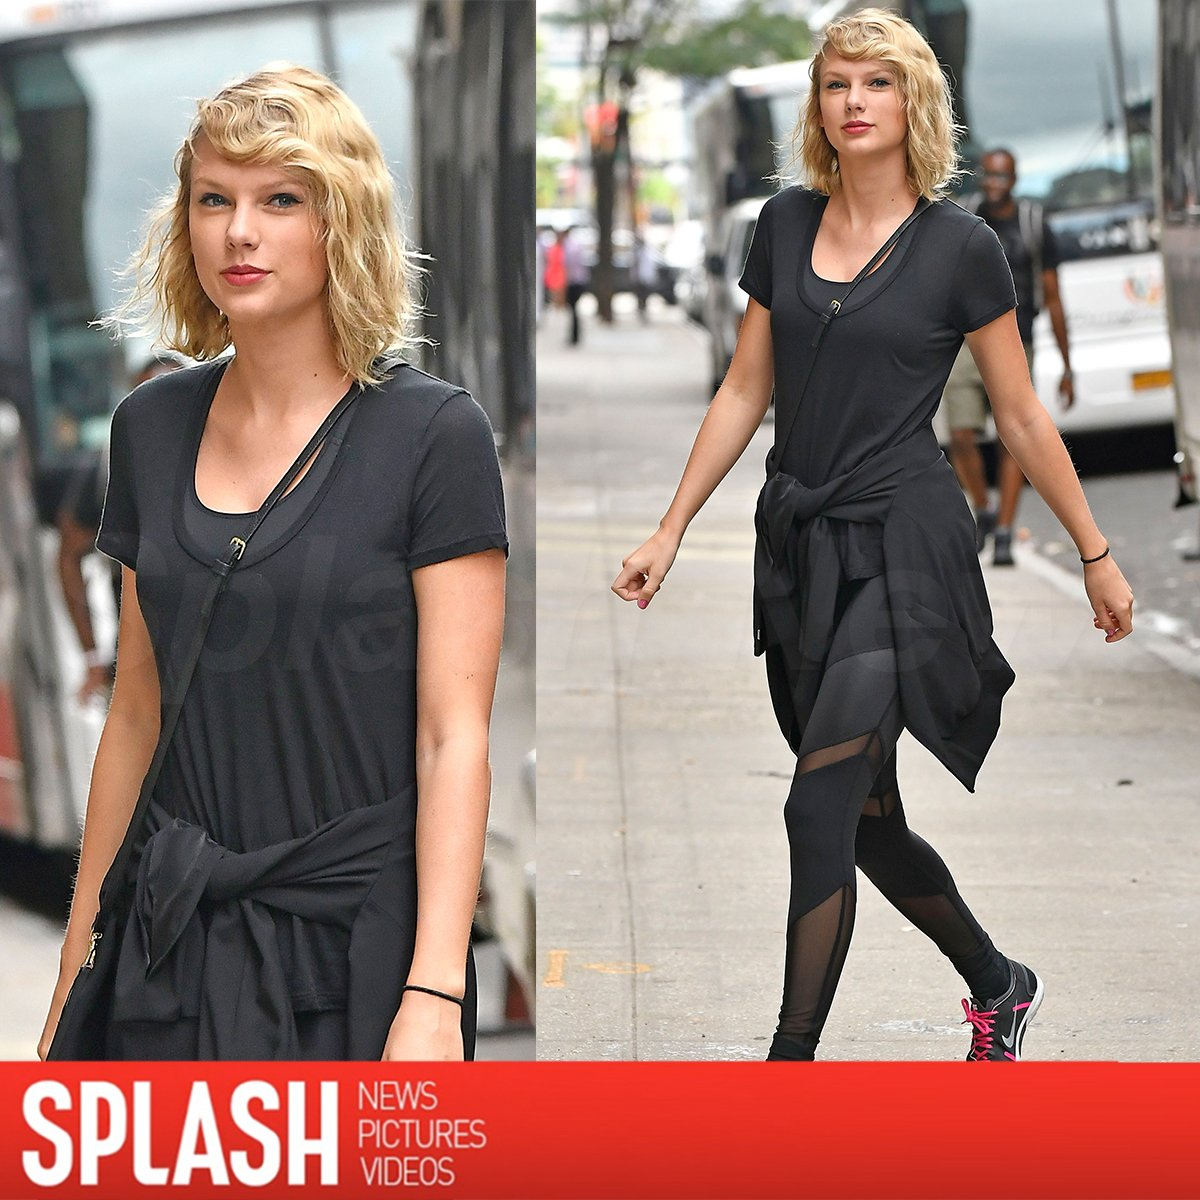 It doesn't look like her breakup with #TomHiddleson is slowing down #TaylorSwift! We caught her headed to the gym https://t.co/EileXZqbHe